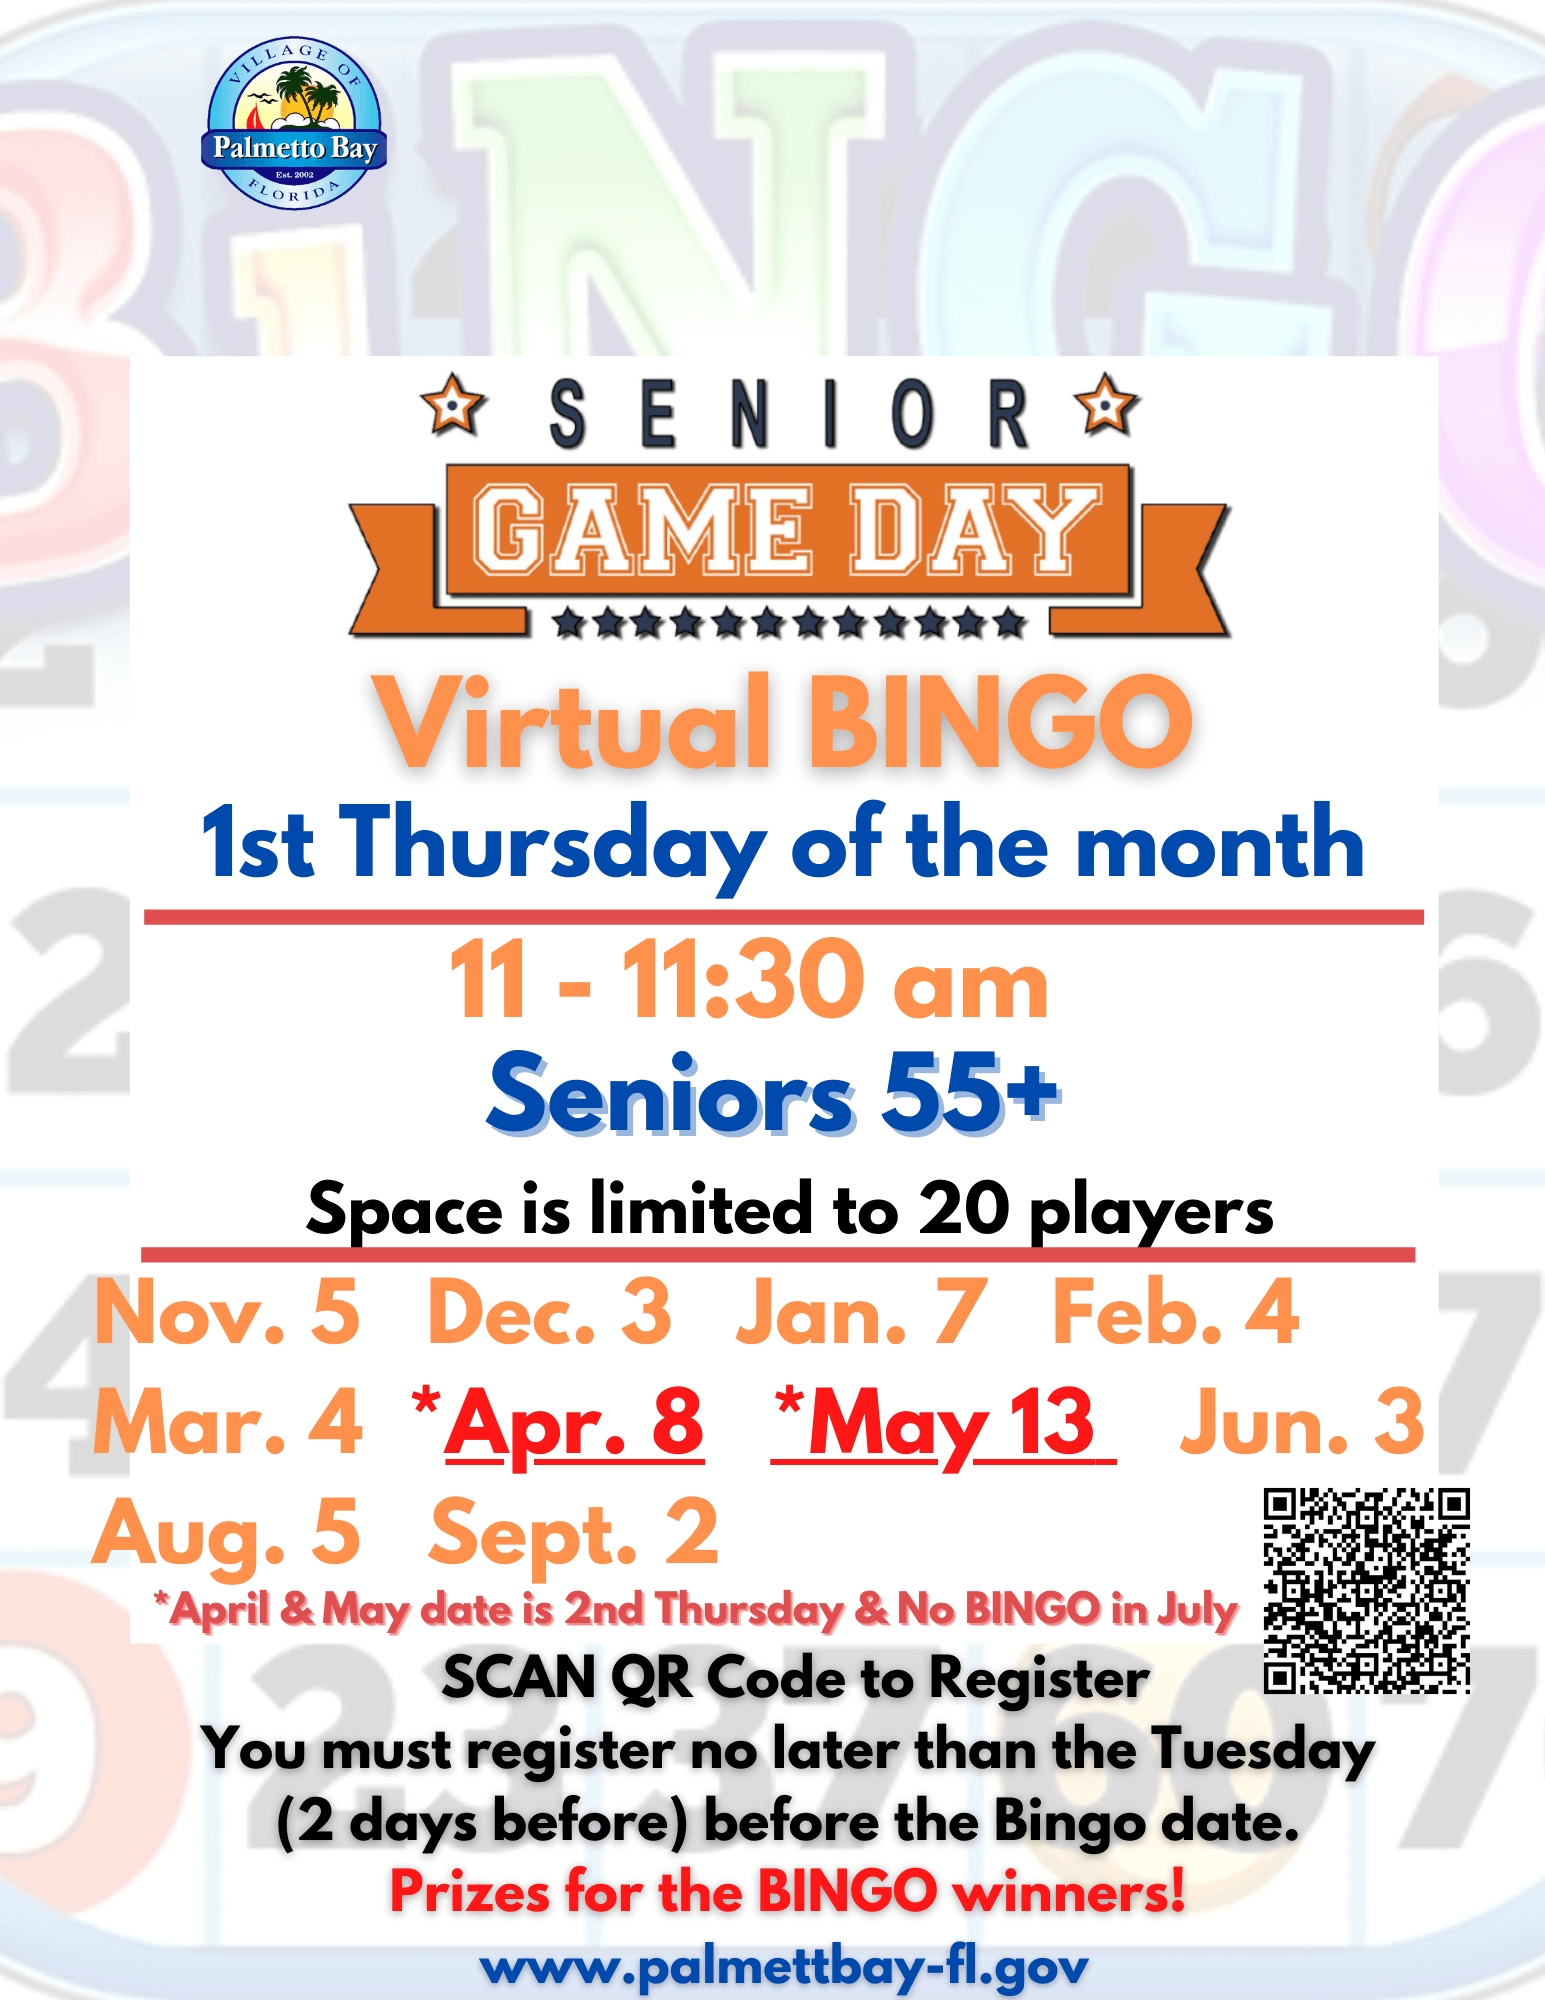 Senior Game Day Virtual Bingo Dates for 2021